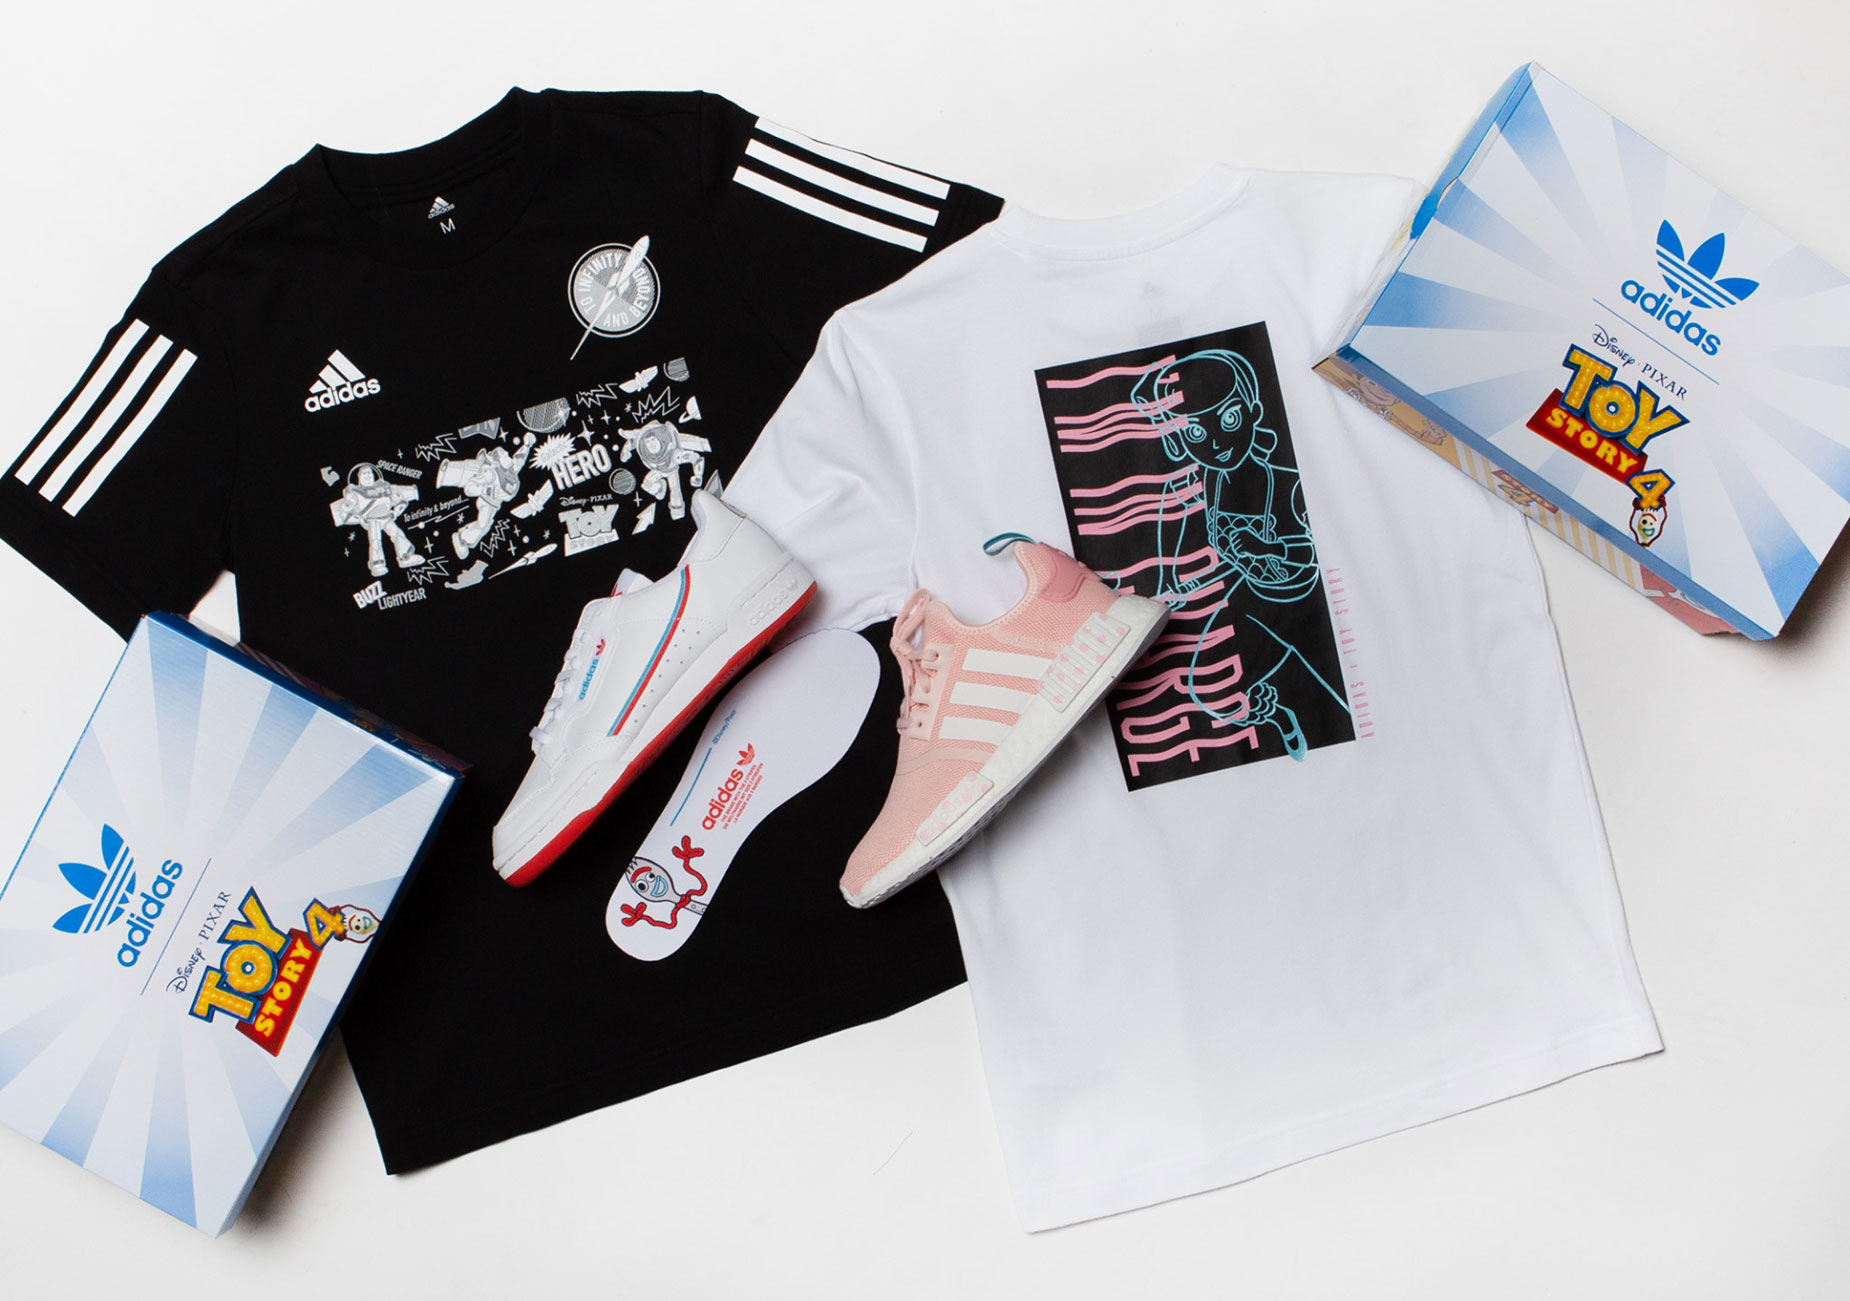 adidas-toy-story-shoes-shirts